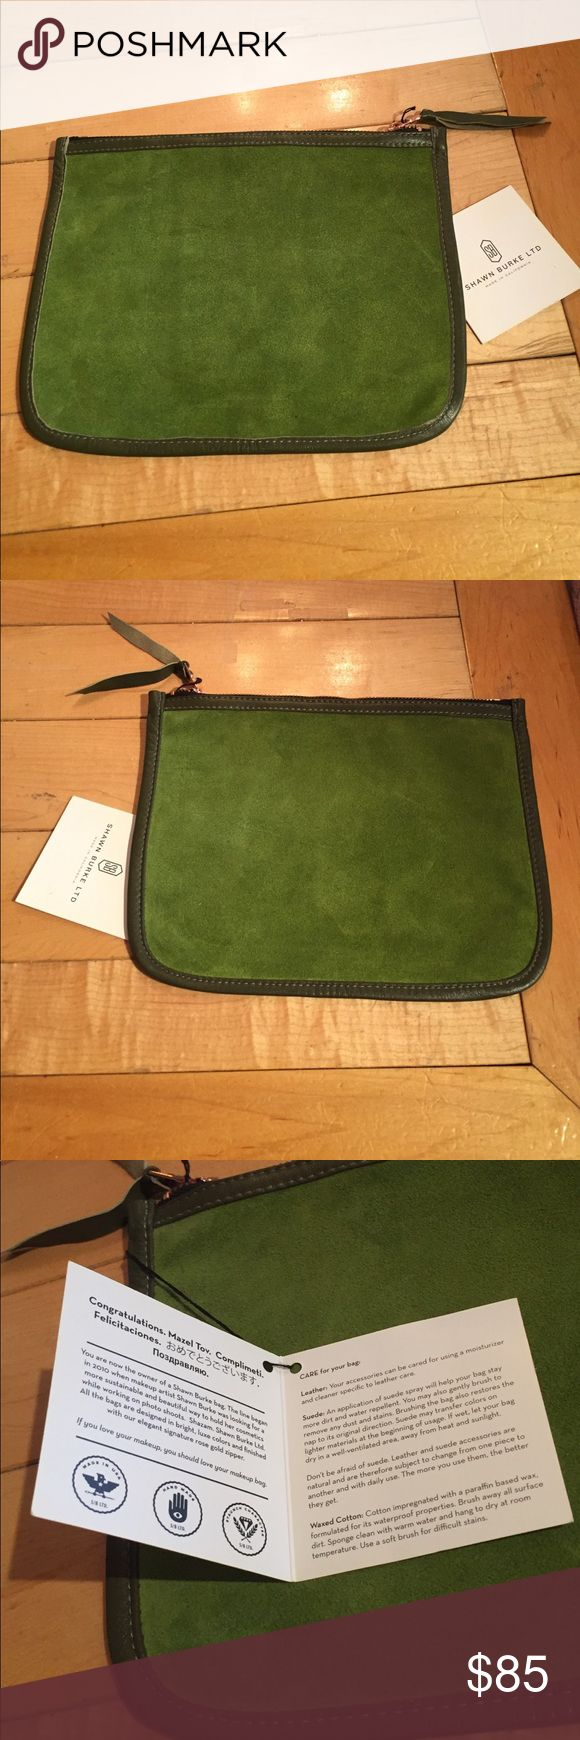 "Shawn Burke olive green suede cosmetics clutch NWT Fabulous olive green suede cosmetics or mini clutch by Shawn Burke LTD. accented with a copper zipper and leather pull this is a super chic piece! Genuine leather and made in California this bag measures  10"" wide by 8"" tall Shawn Burke LTD Bags Cosmetic Bags & Cases"